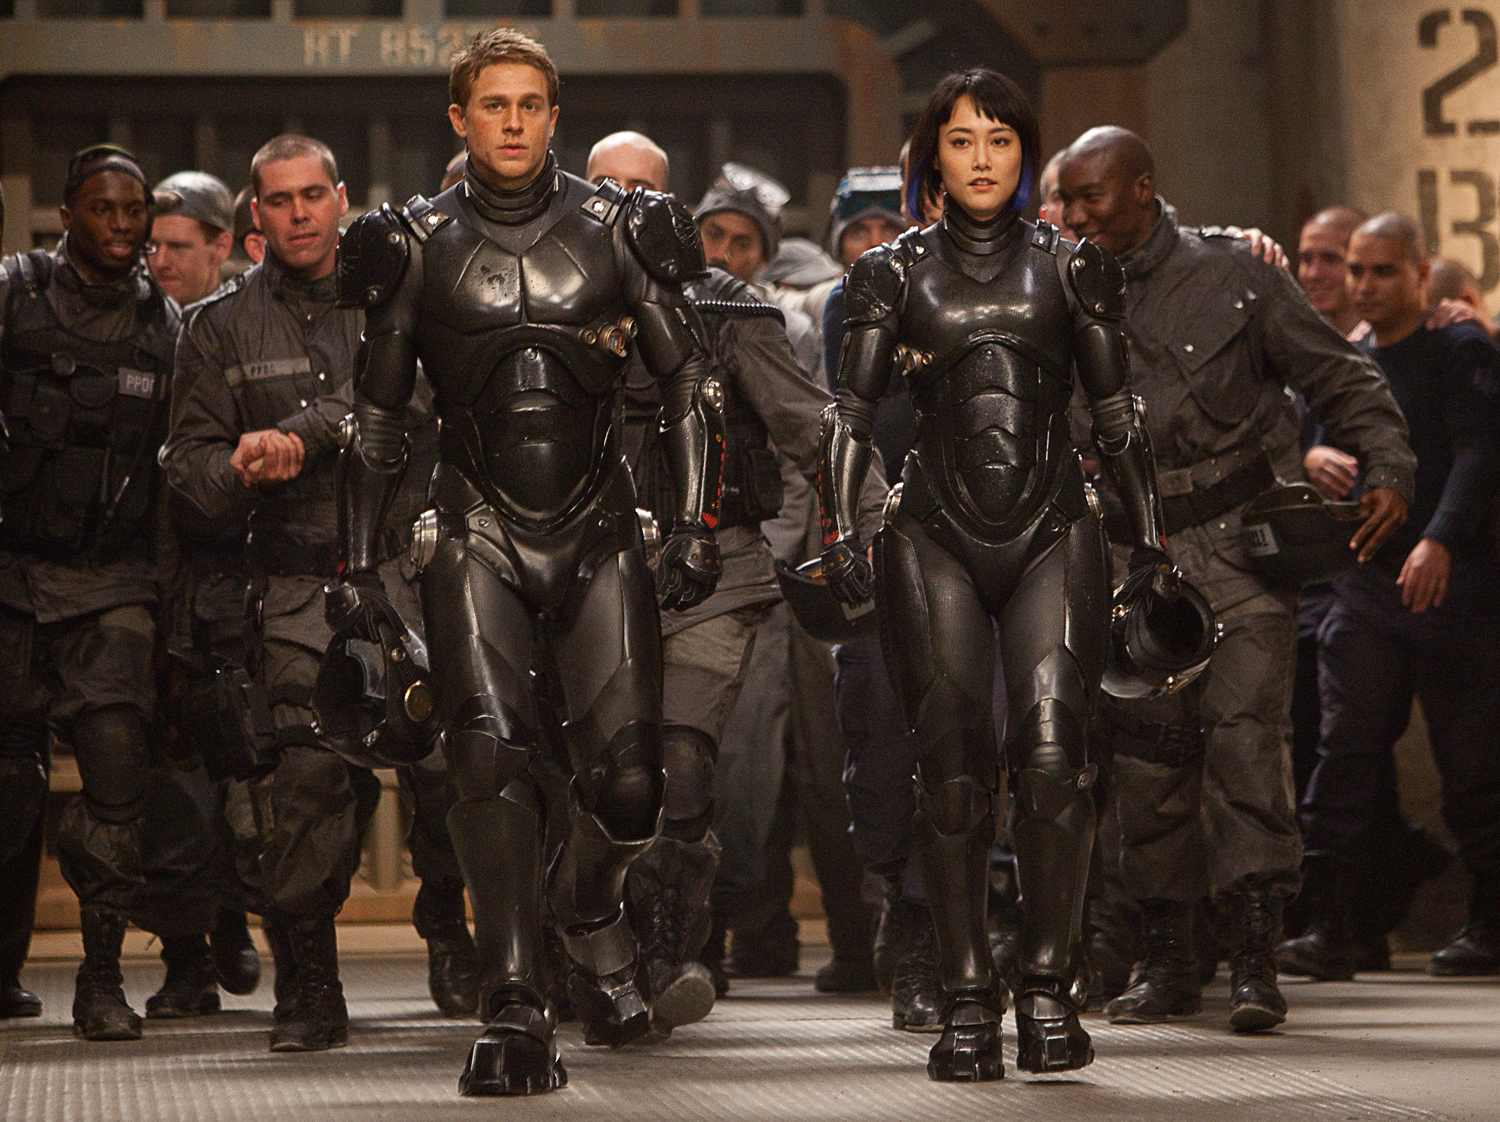 pacific rim suit up New Pacific Rim TV Spots Released